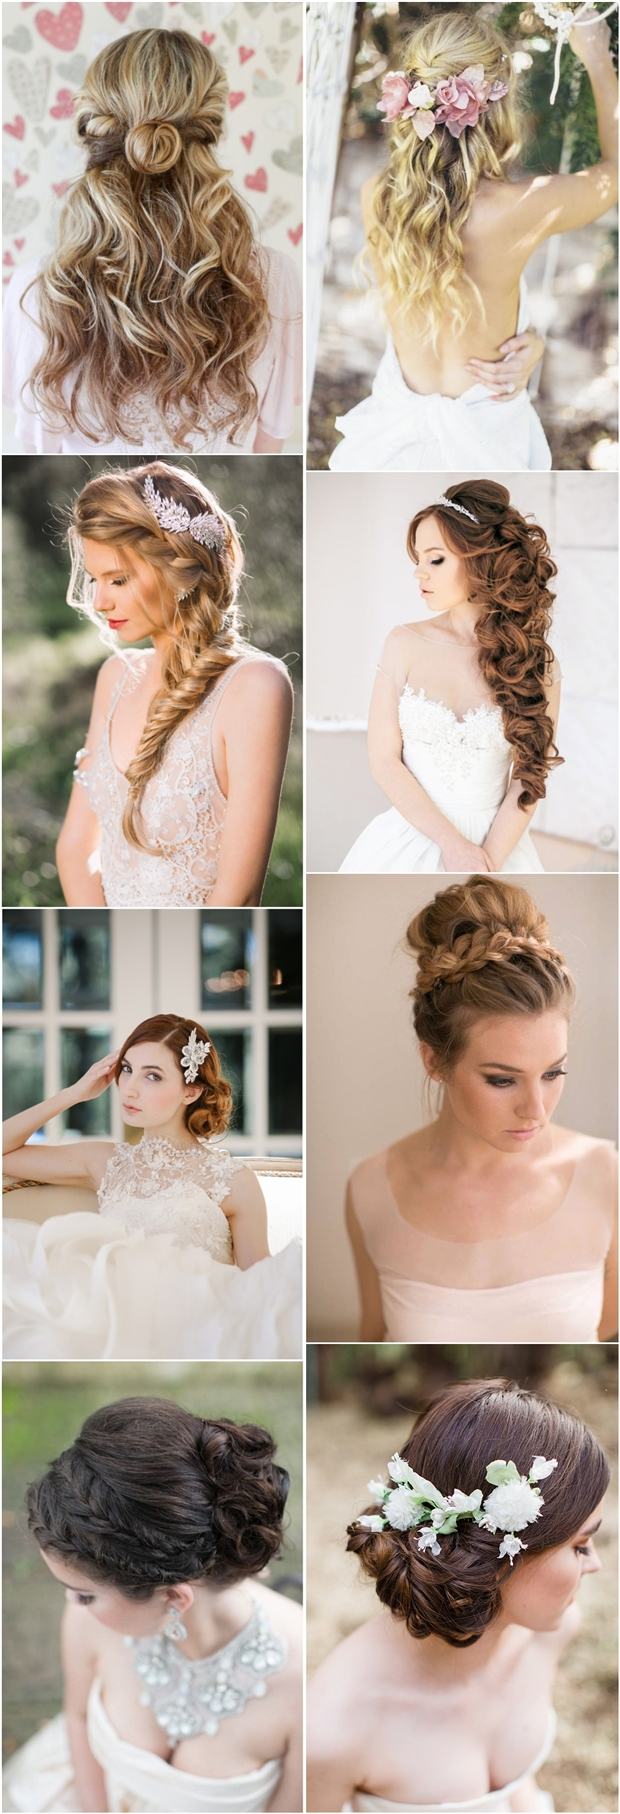 20 fabulous wedding hairstyles for every bride | tulle